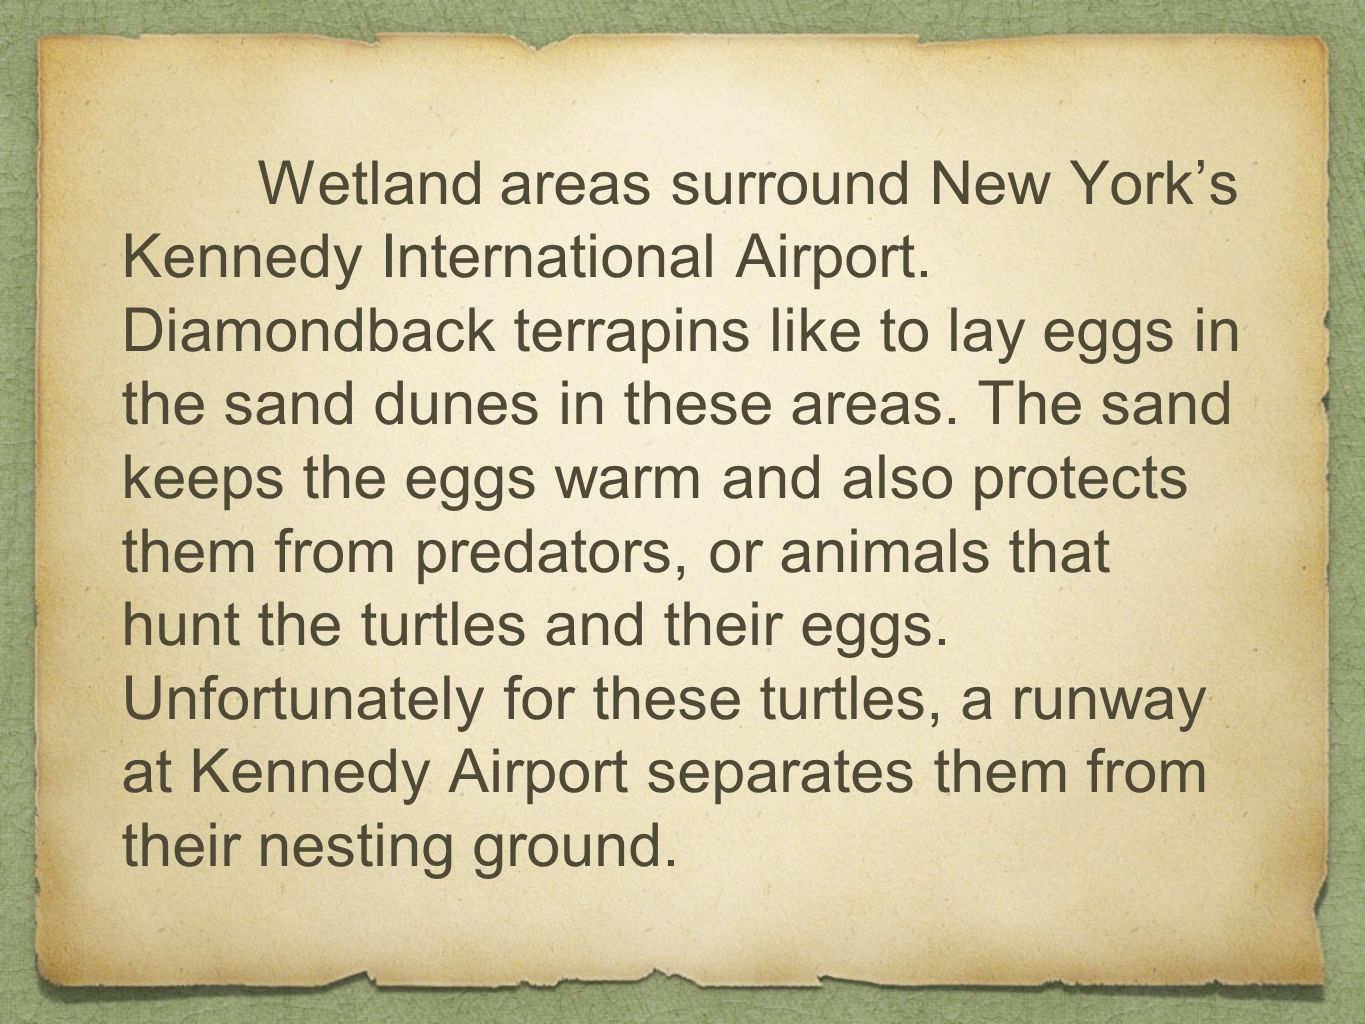 Wetland areas surround New Yorks Kennedy International Airport. Diamondback terrapins like to lay eggs in the sand dunes in these areas. The sand keep